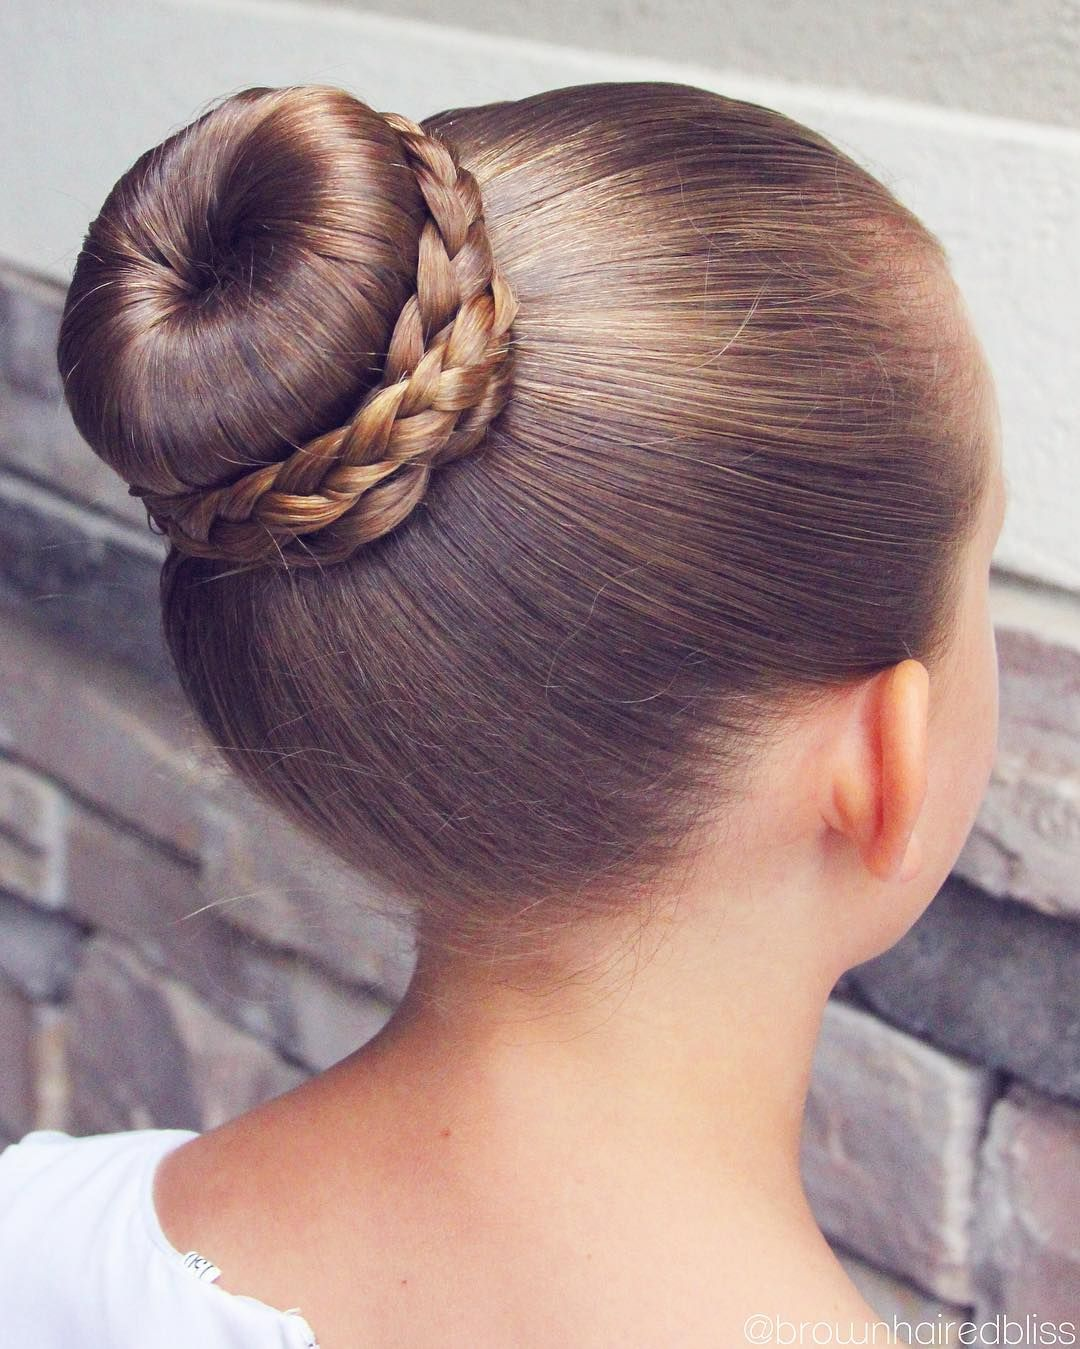 hair bun styles ballet bun with braids wrapped around acro for kayli 4658